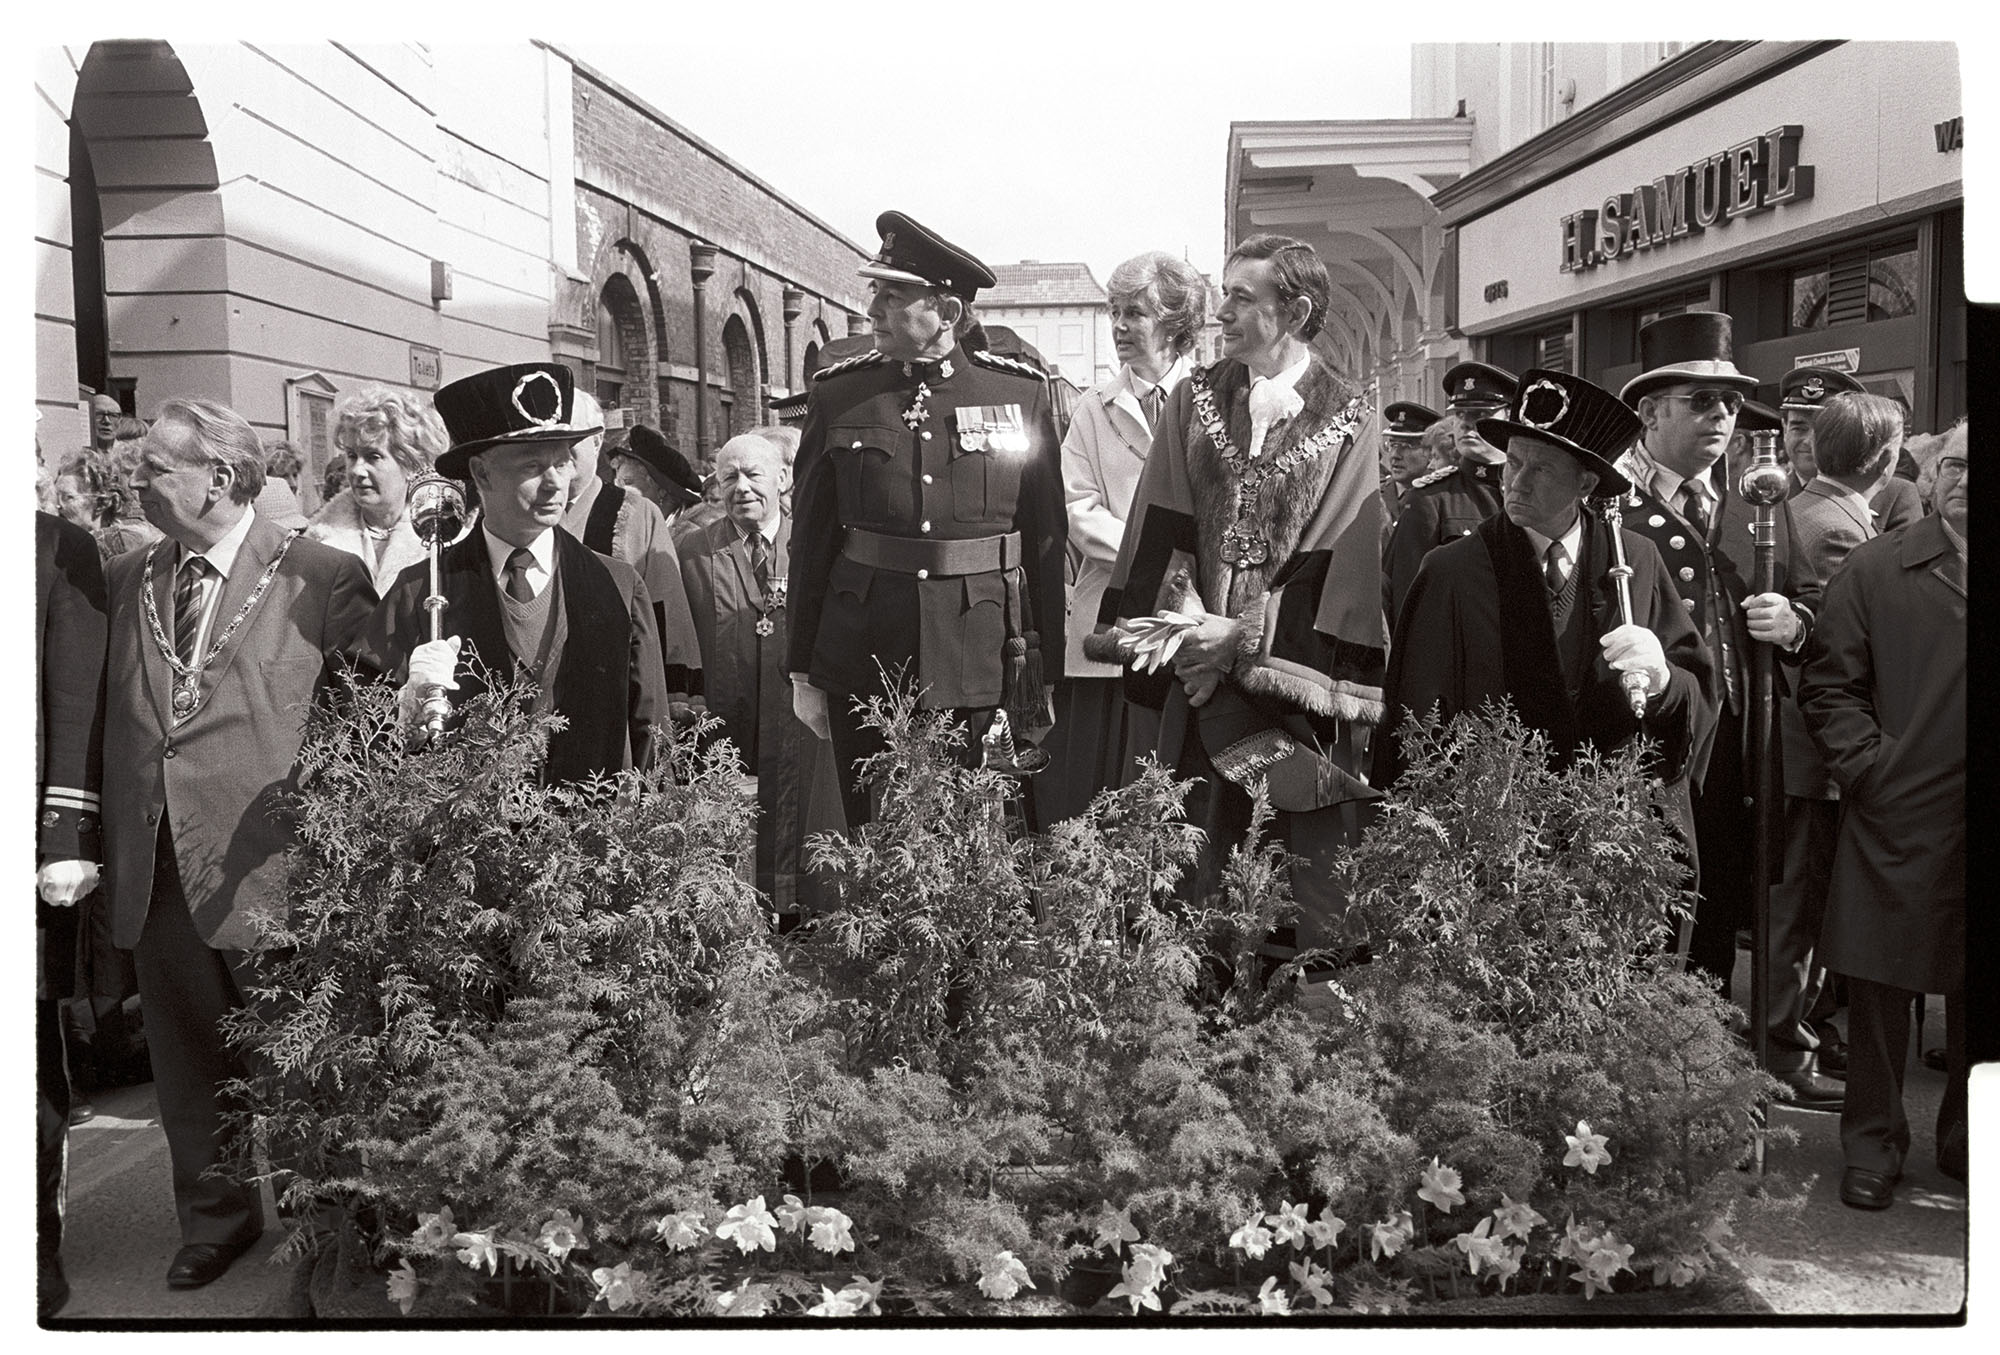 Mayor and officers, dignitaries at march past of regiment being given freedom of city? <br /> [The Mayor, service personnel and other officials and dignitaries stood in Barnstaple High Street, behind a flower bed, watching a regiment march past who are being given the freedom of the town. The shop front of H Samuel, Jewellers, is visible in the background.]